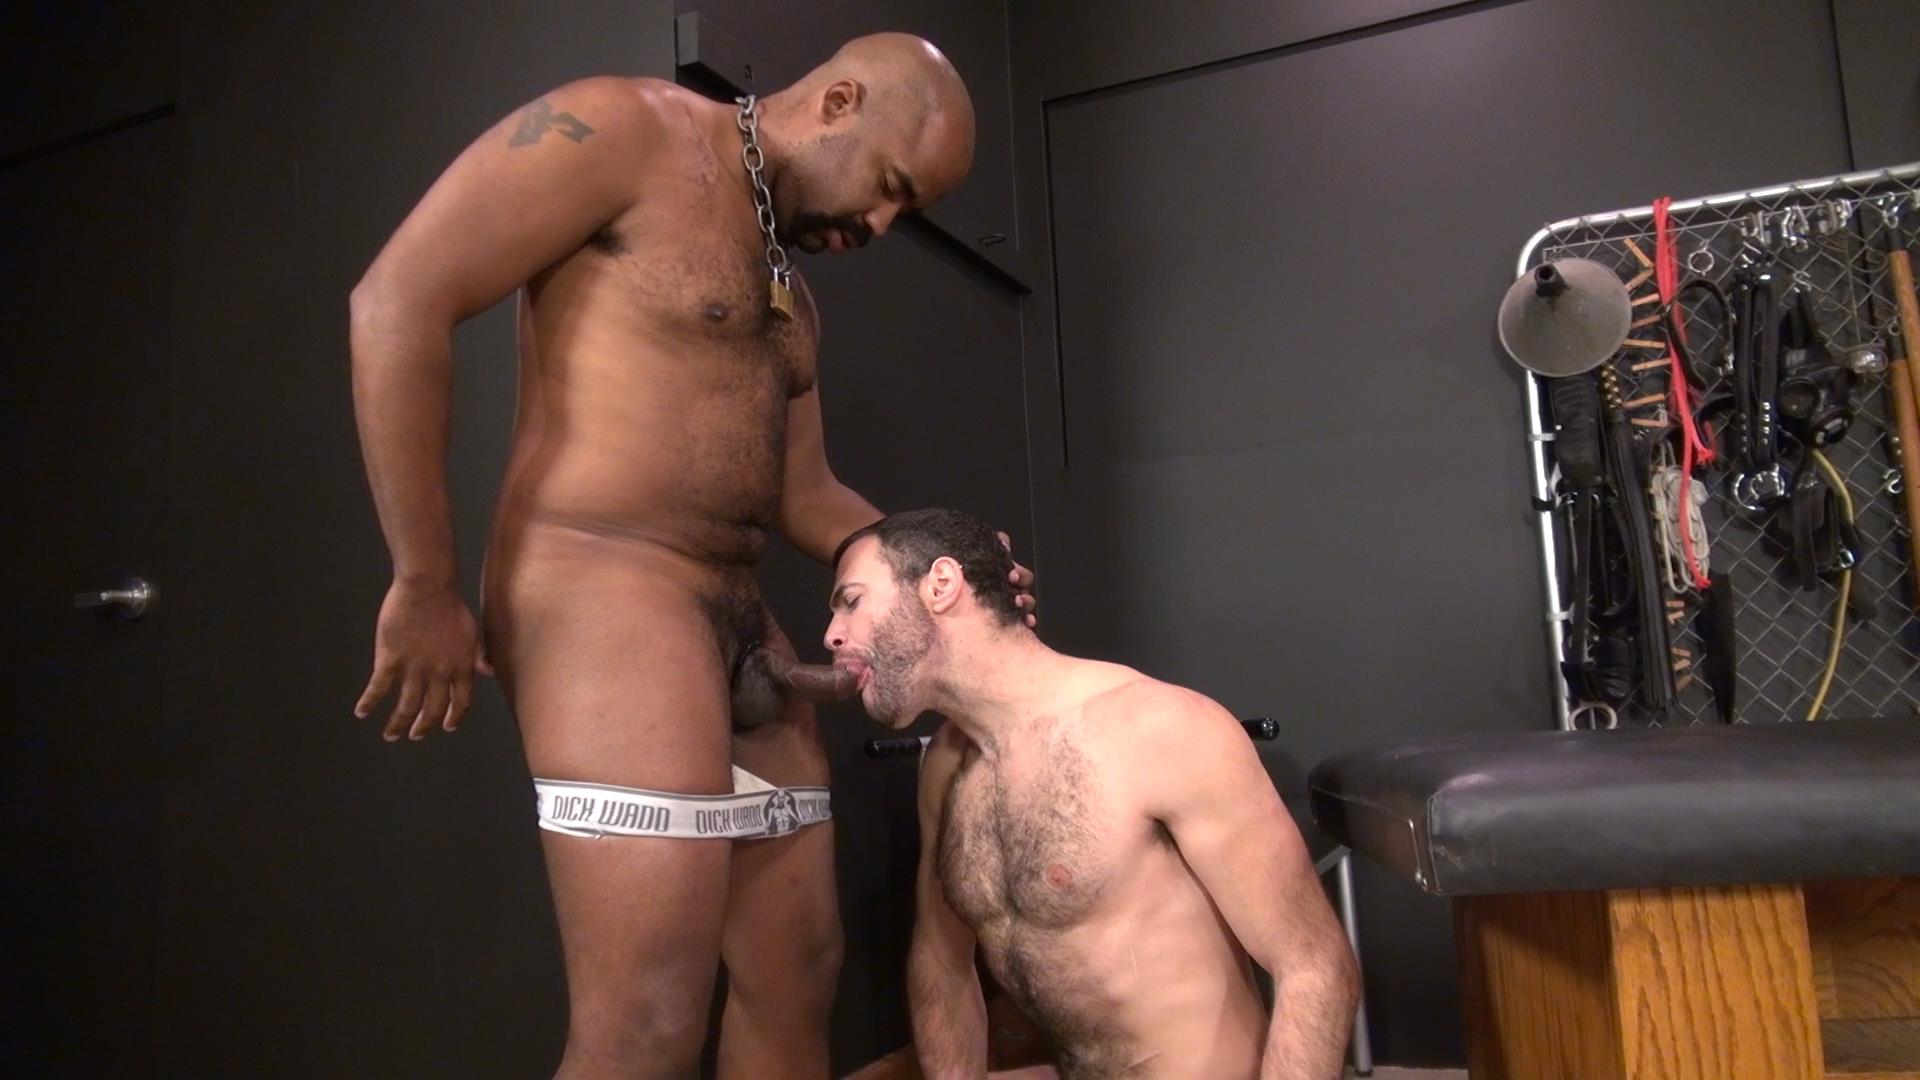 Raw and Rough Jake Wetmore and Dusty Williams and Kid Satyr Bareback Taking Raw Daddy Loads Cum Amateur Gay Porn 06 Hairy Pup Taking Raw Interracial Daddy Loads Bareback